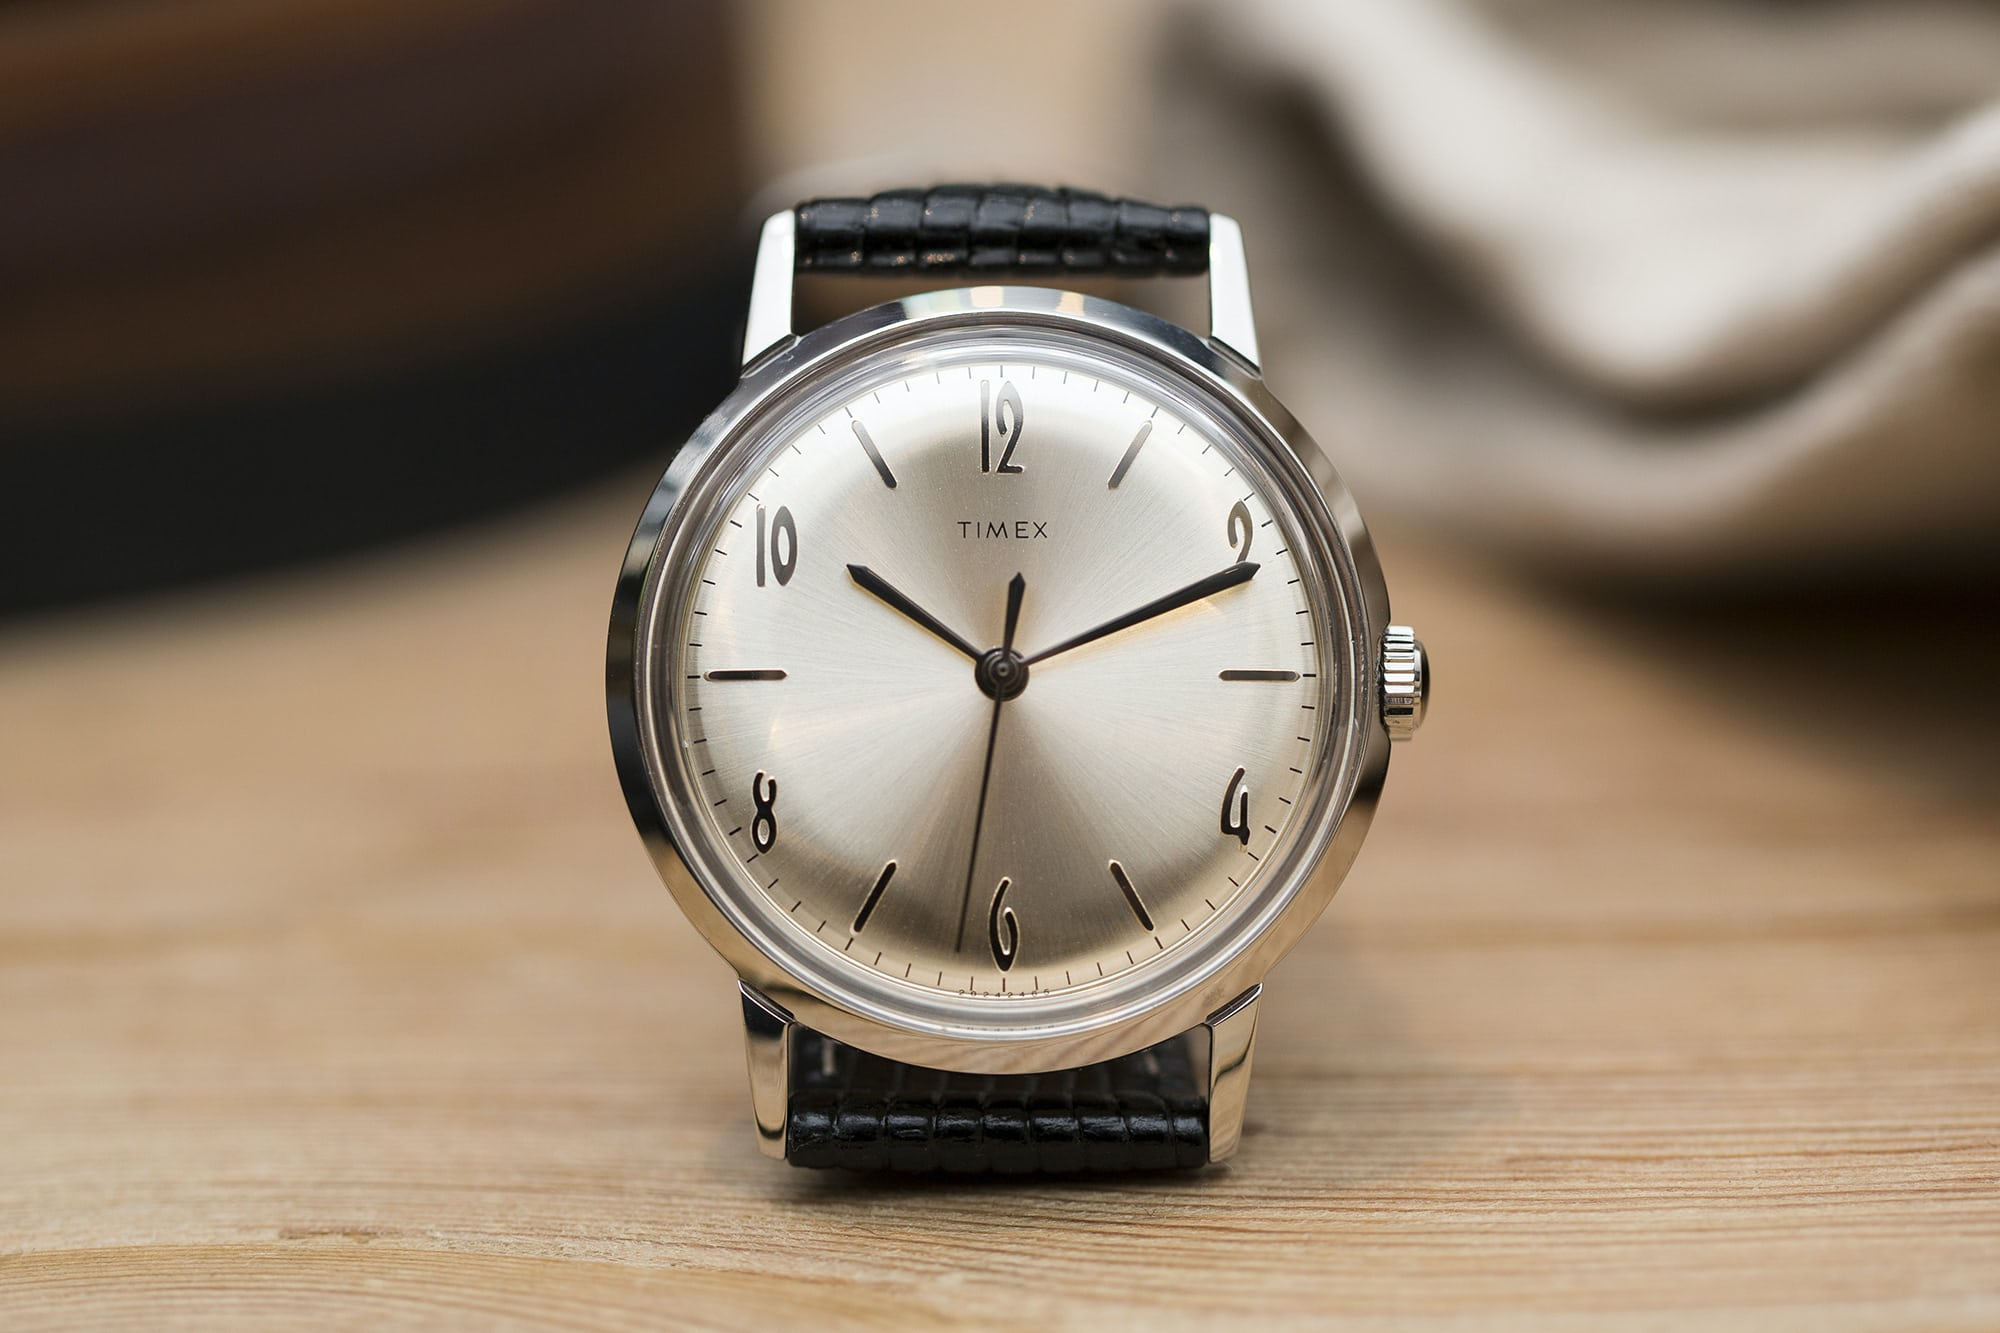 <p>The center-seconds watch is the first mechanical watch produced by the maker since 1982.</p>